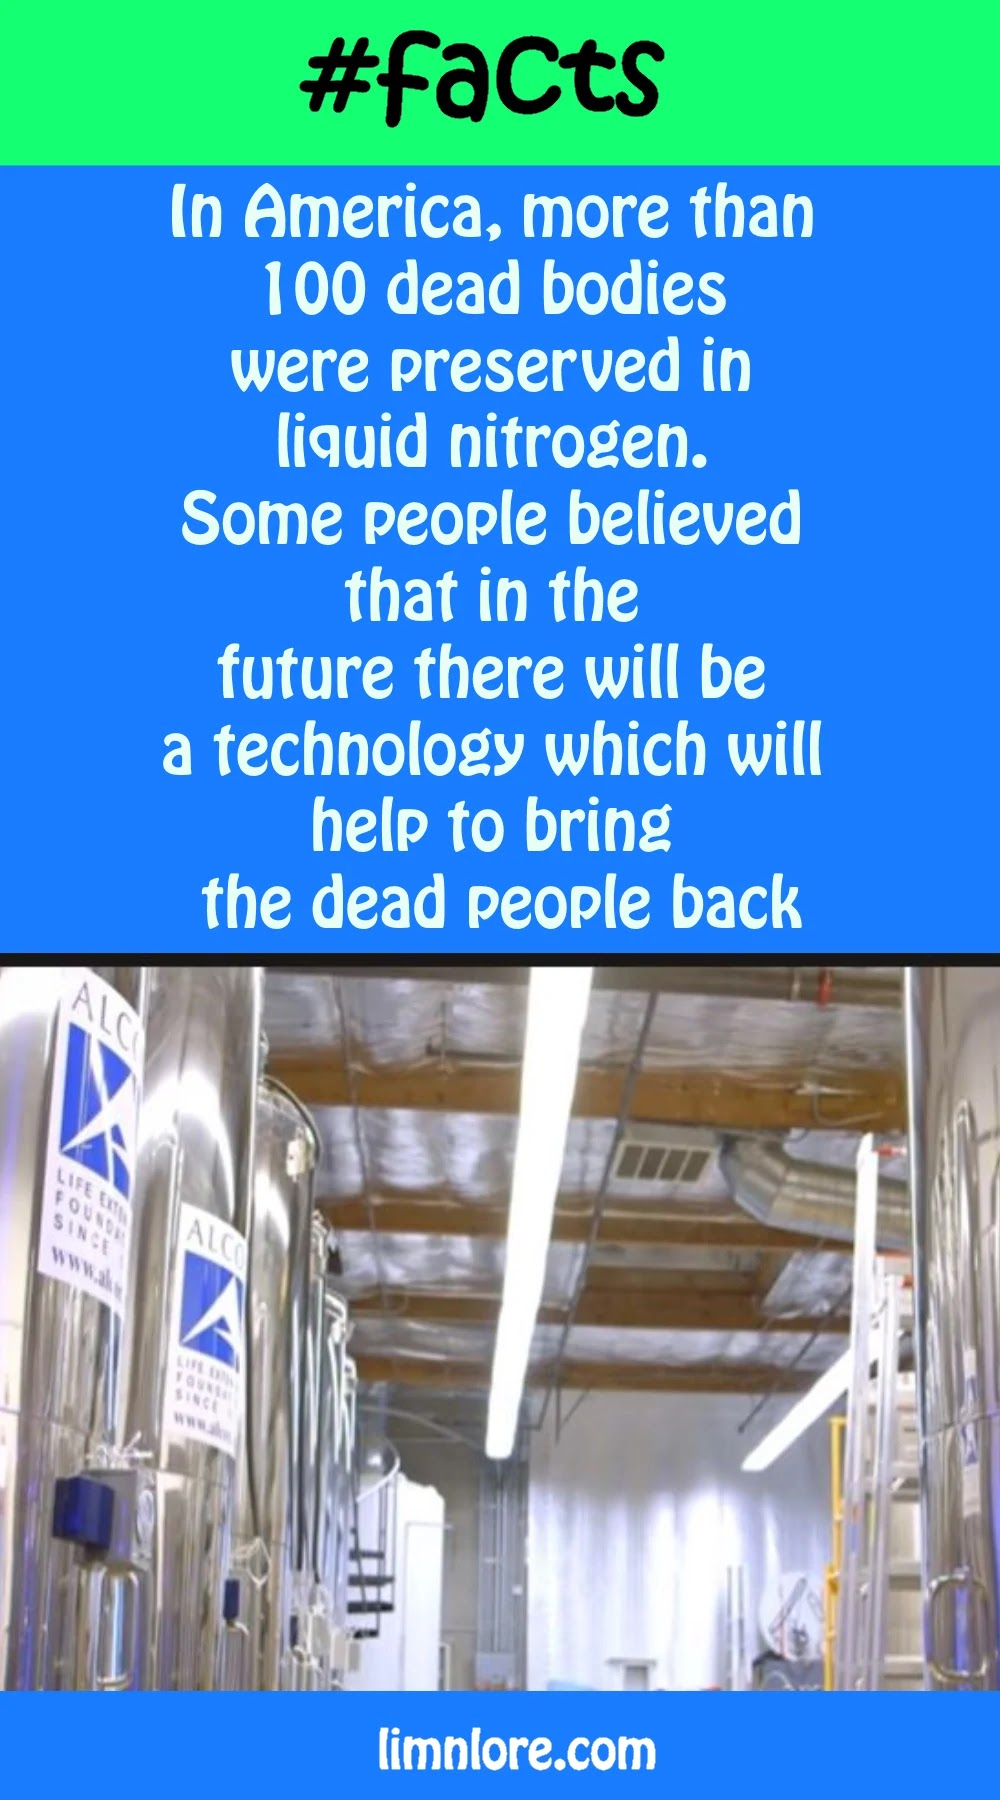 In America, more than 100 dead bodies were preserved in liquid nitrogen. Some people believed that in the future there will be a technology which will help to bring the dead people back